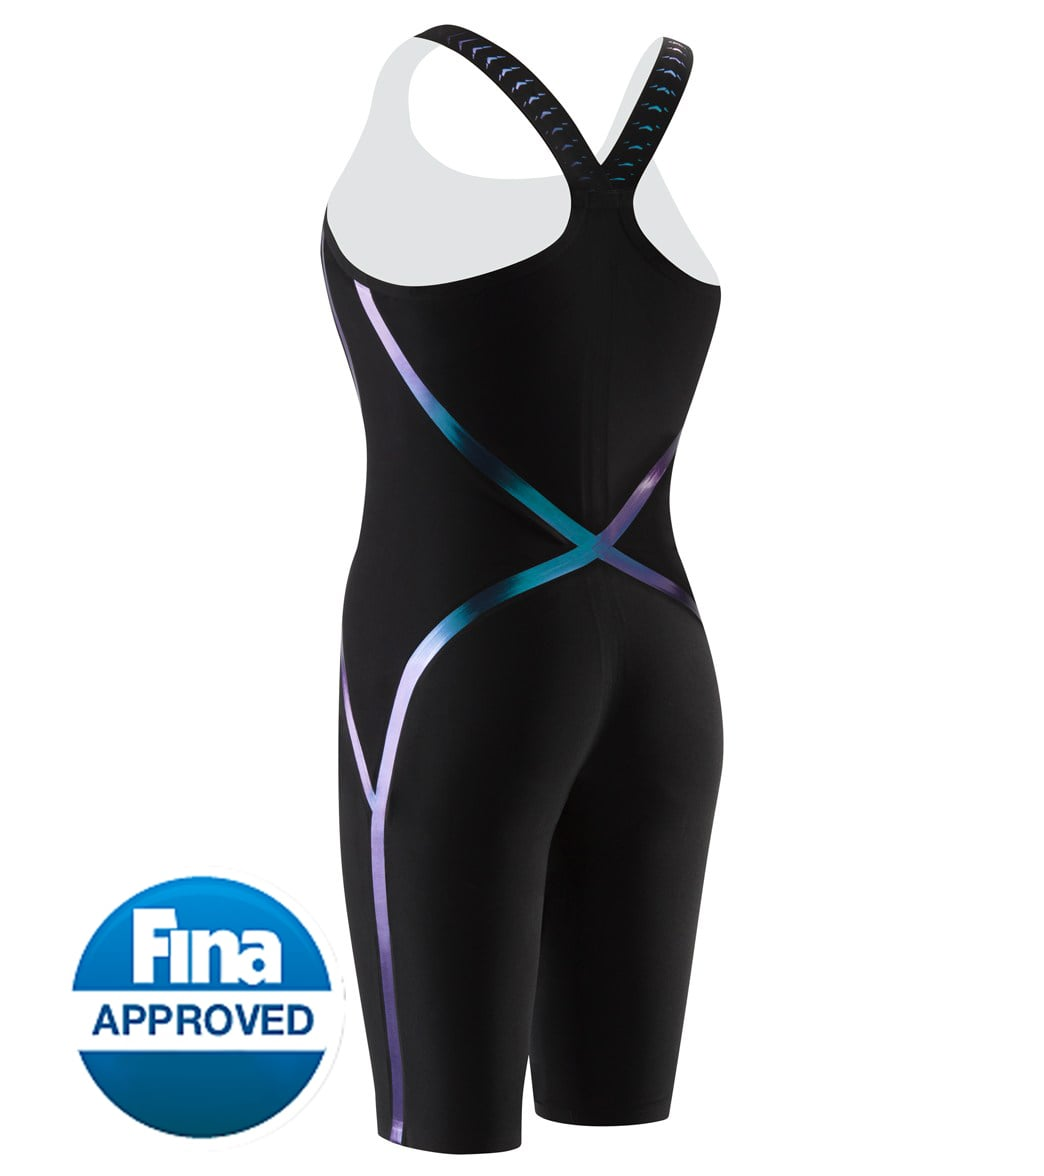 Speedo Women s LZR Racer X Closed Back Kneeskin Tech Suit Swimsuit at  SwimOutlet.com - Free Shipping 0b5865d63e